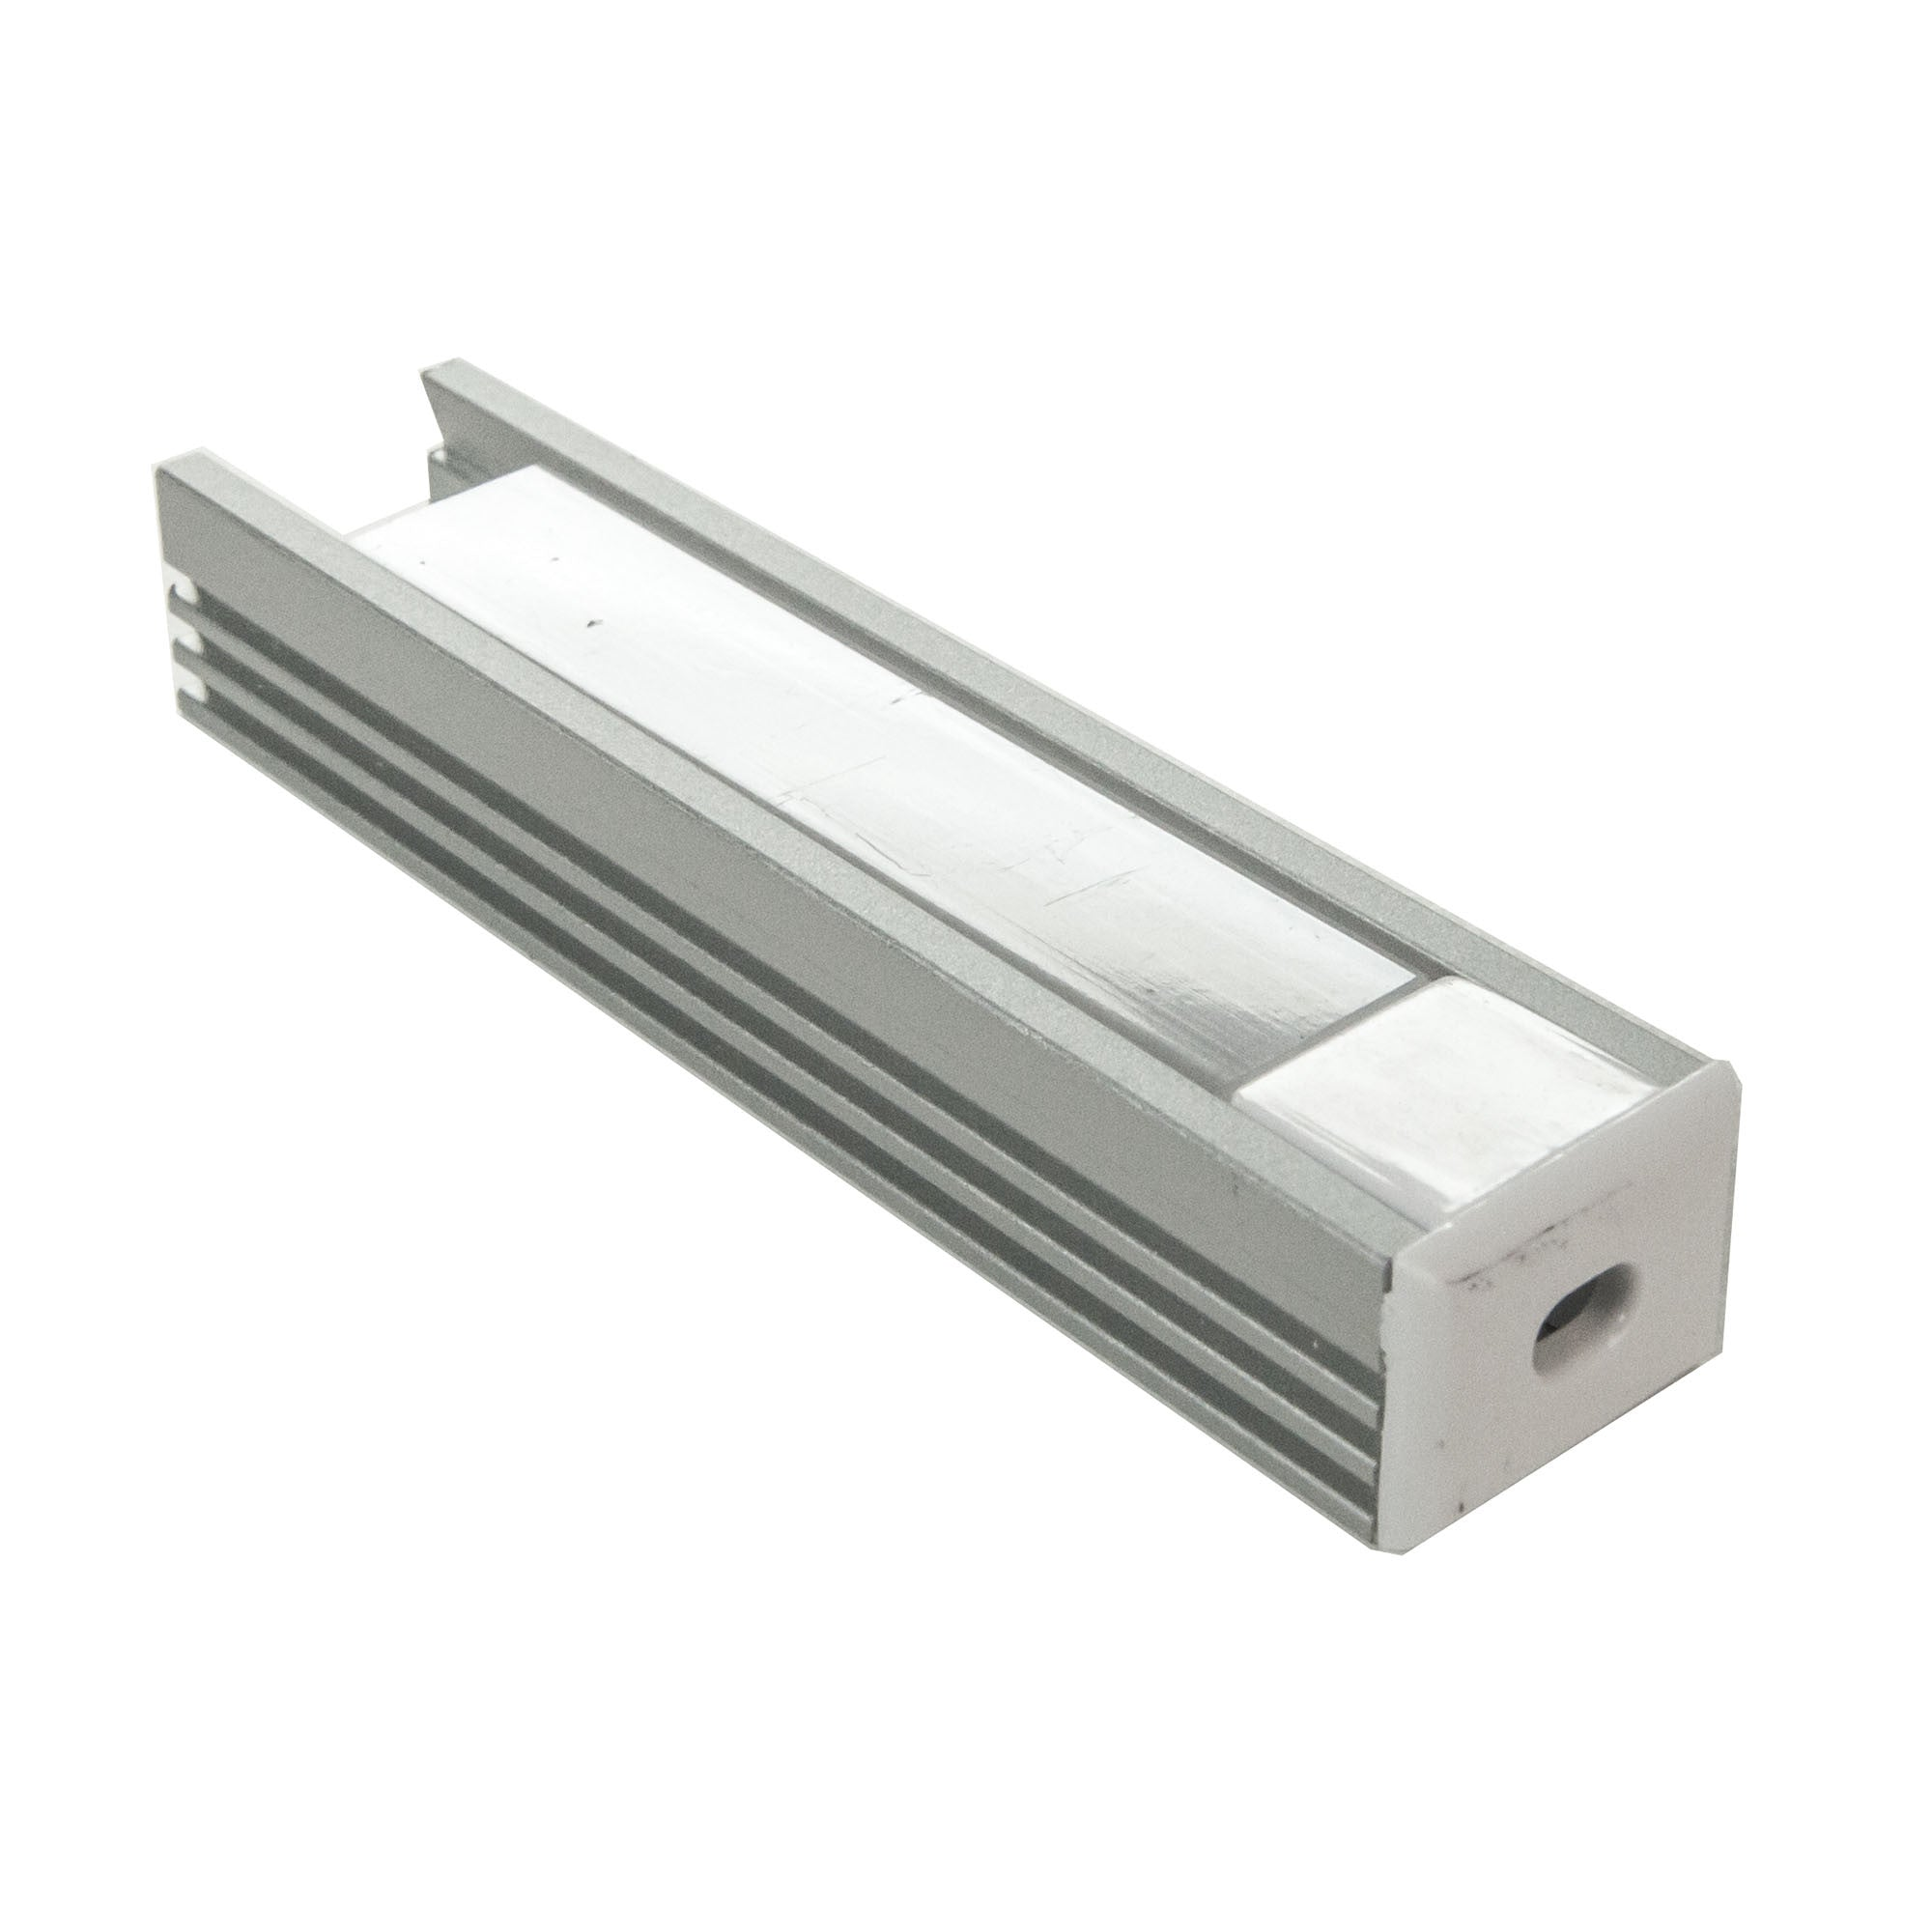 Aluminum Channel - MOSS-ALM-1612 - Moss LED